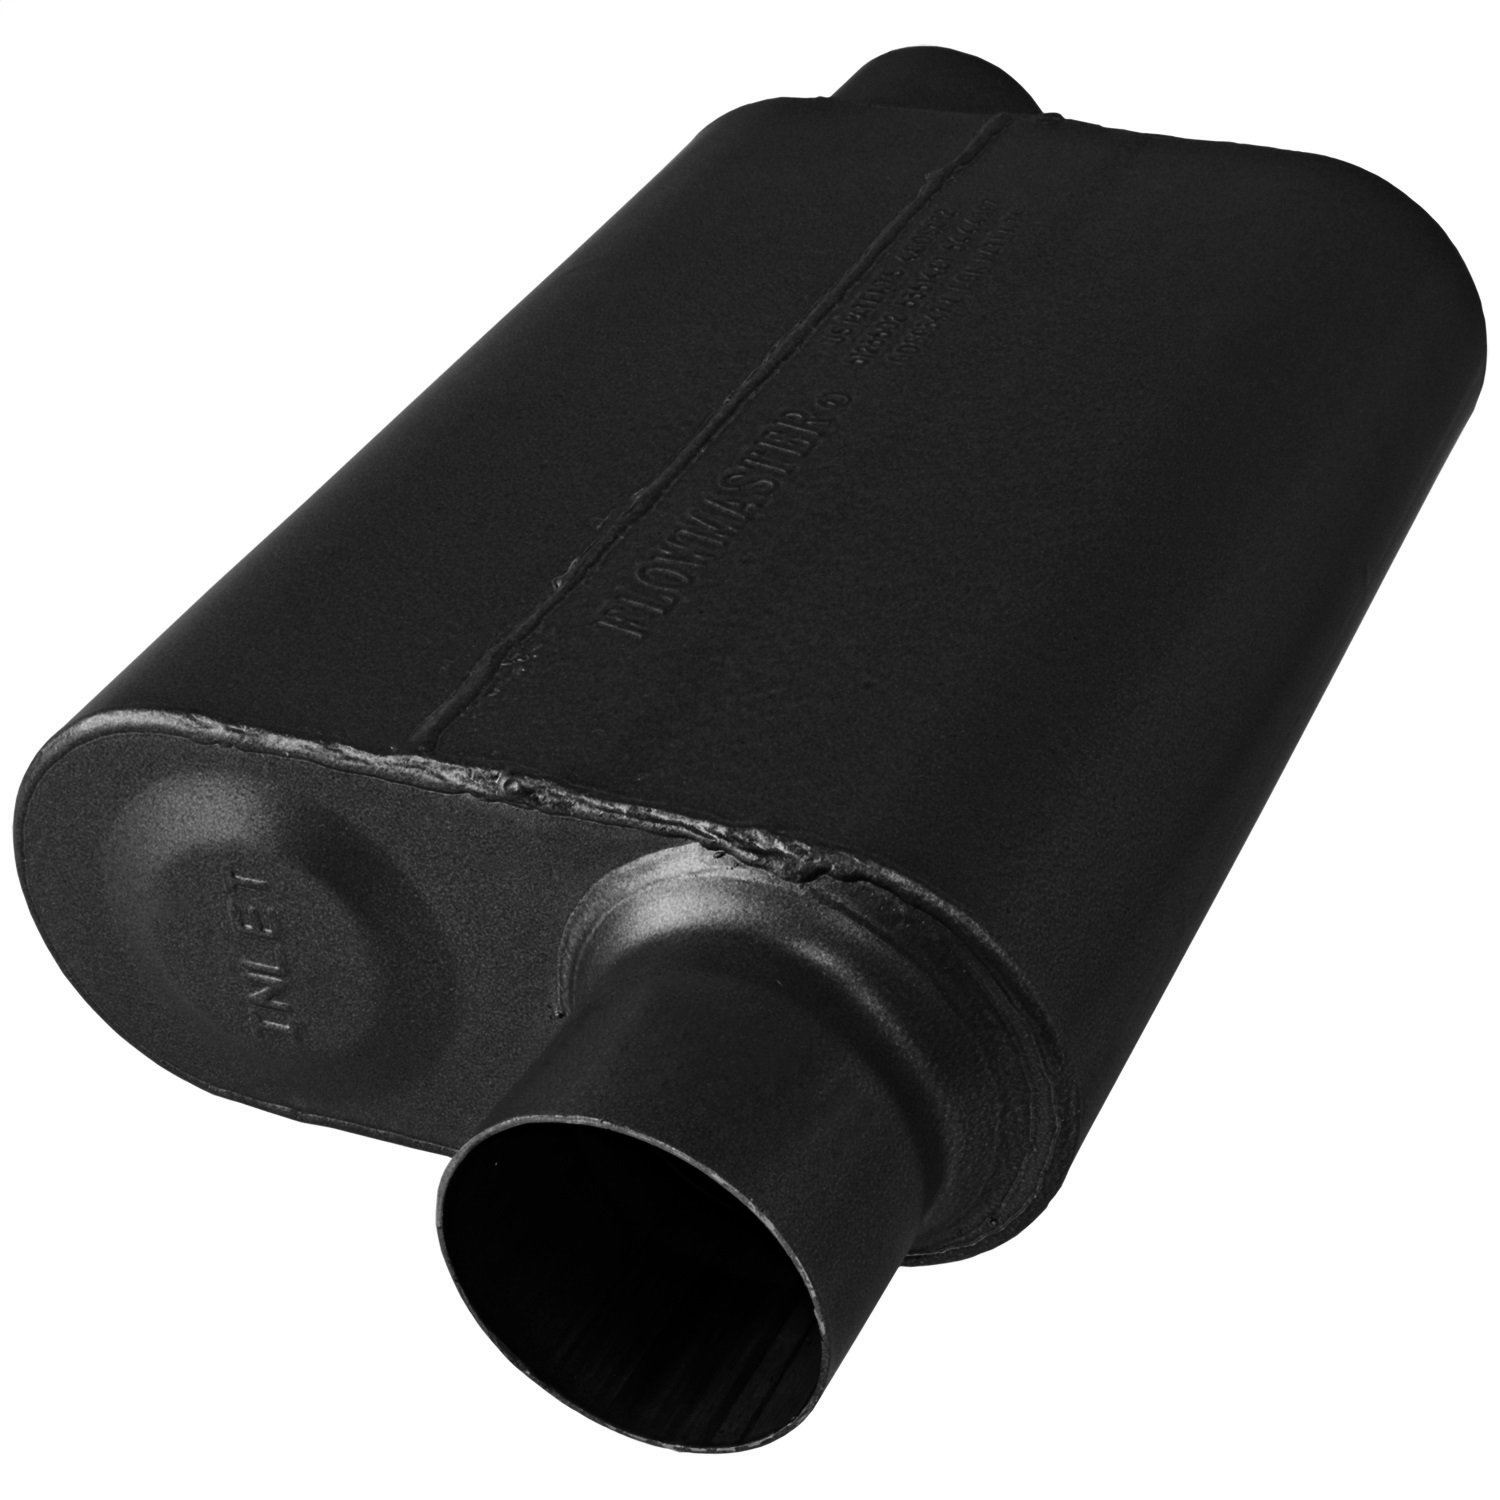 Flowmaster 8043043 40 Series Muffler 409S 3.00 Offset OUT Aggressive Sound 3.00 Offset IN